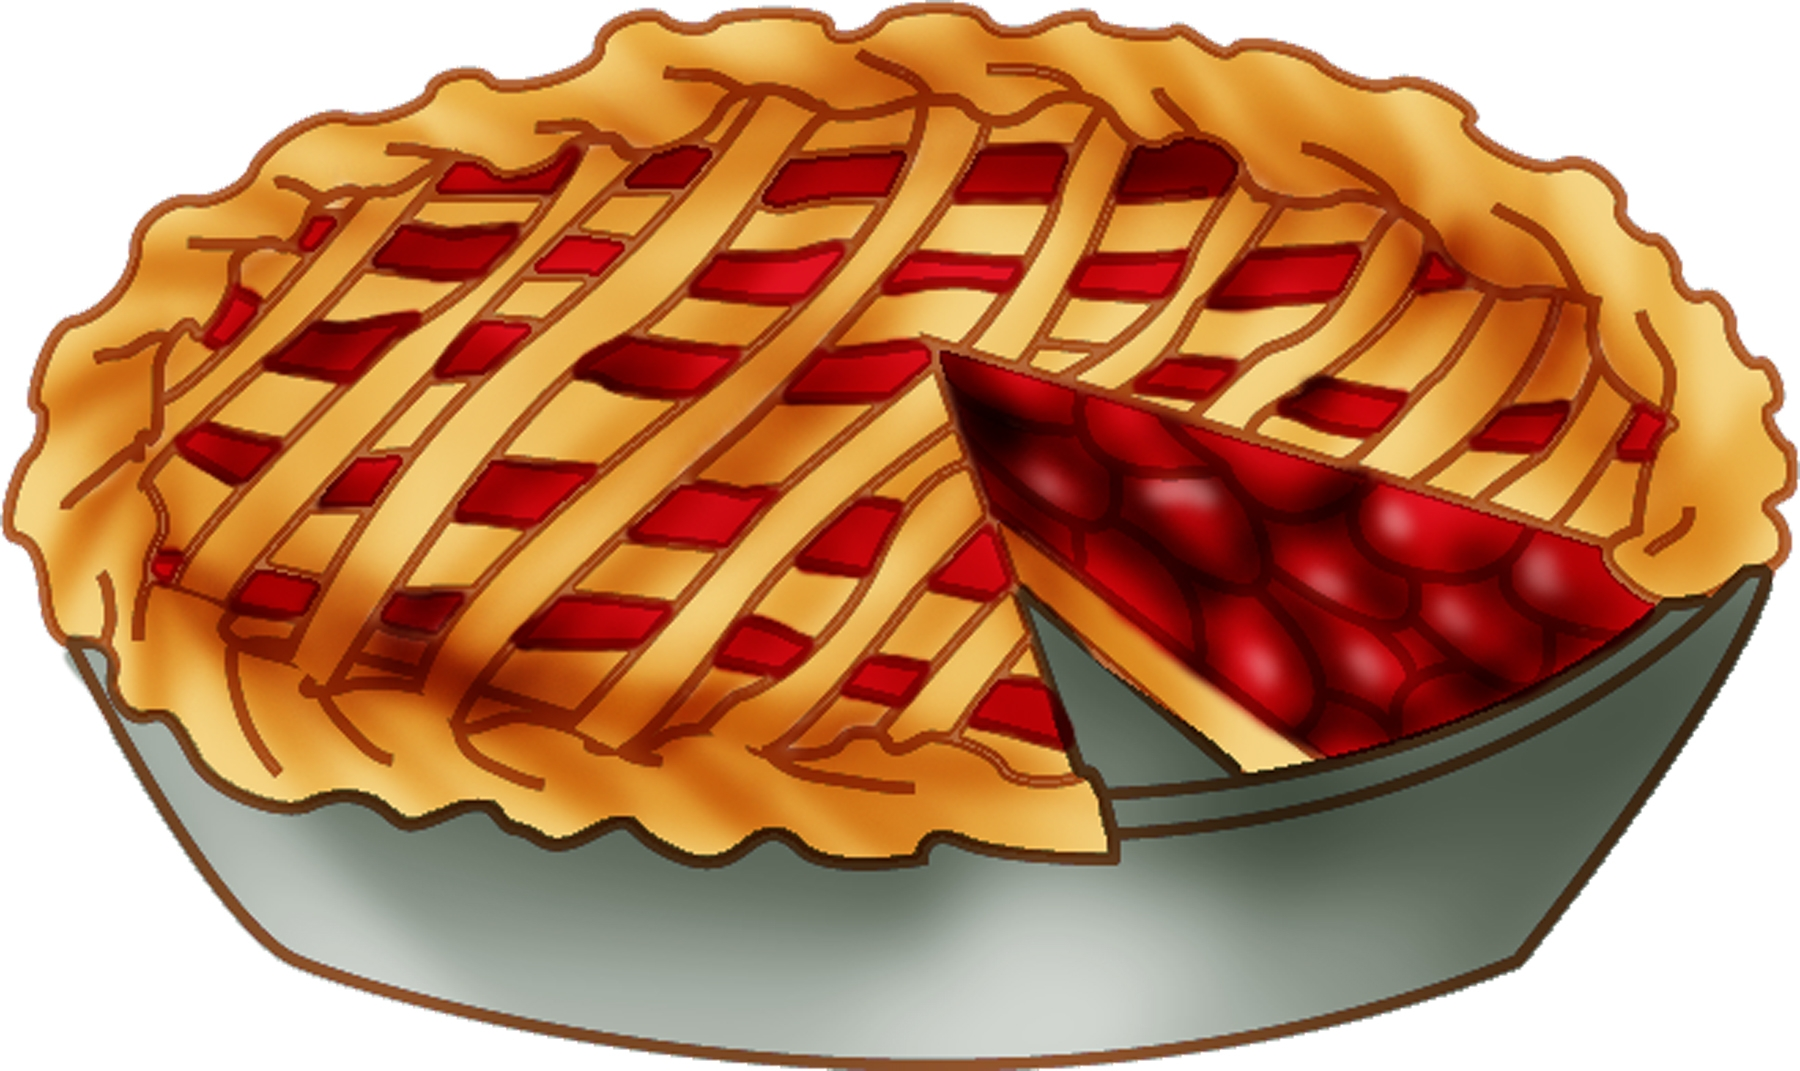 Awesome gallery digital collection. Pie clipart